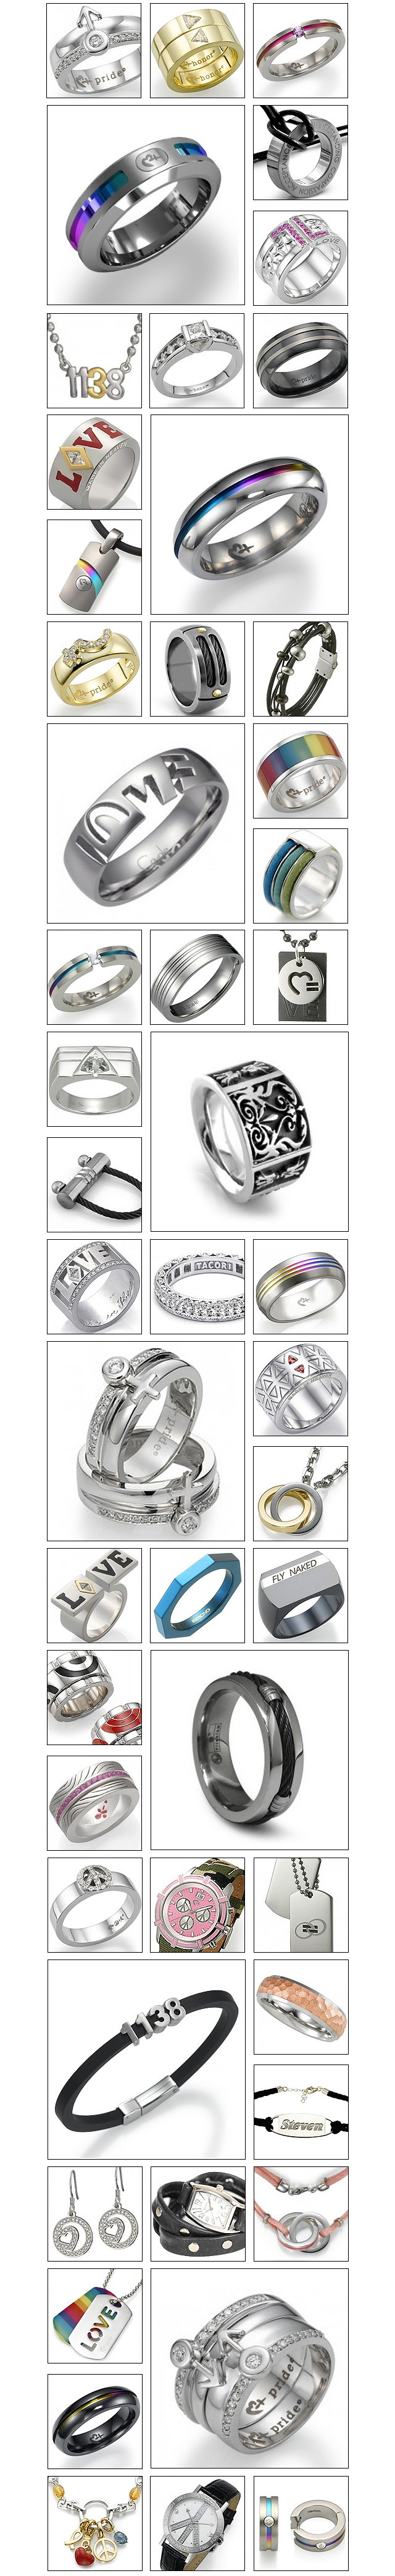 Significant Other LGBT Gay Pride Jewelry